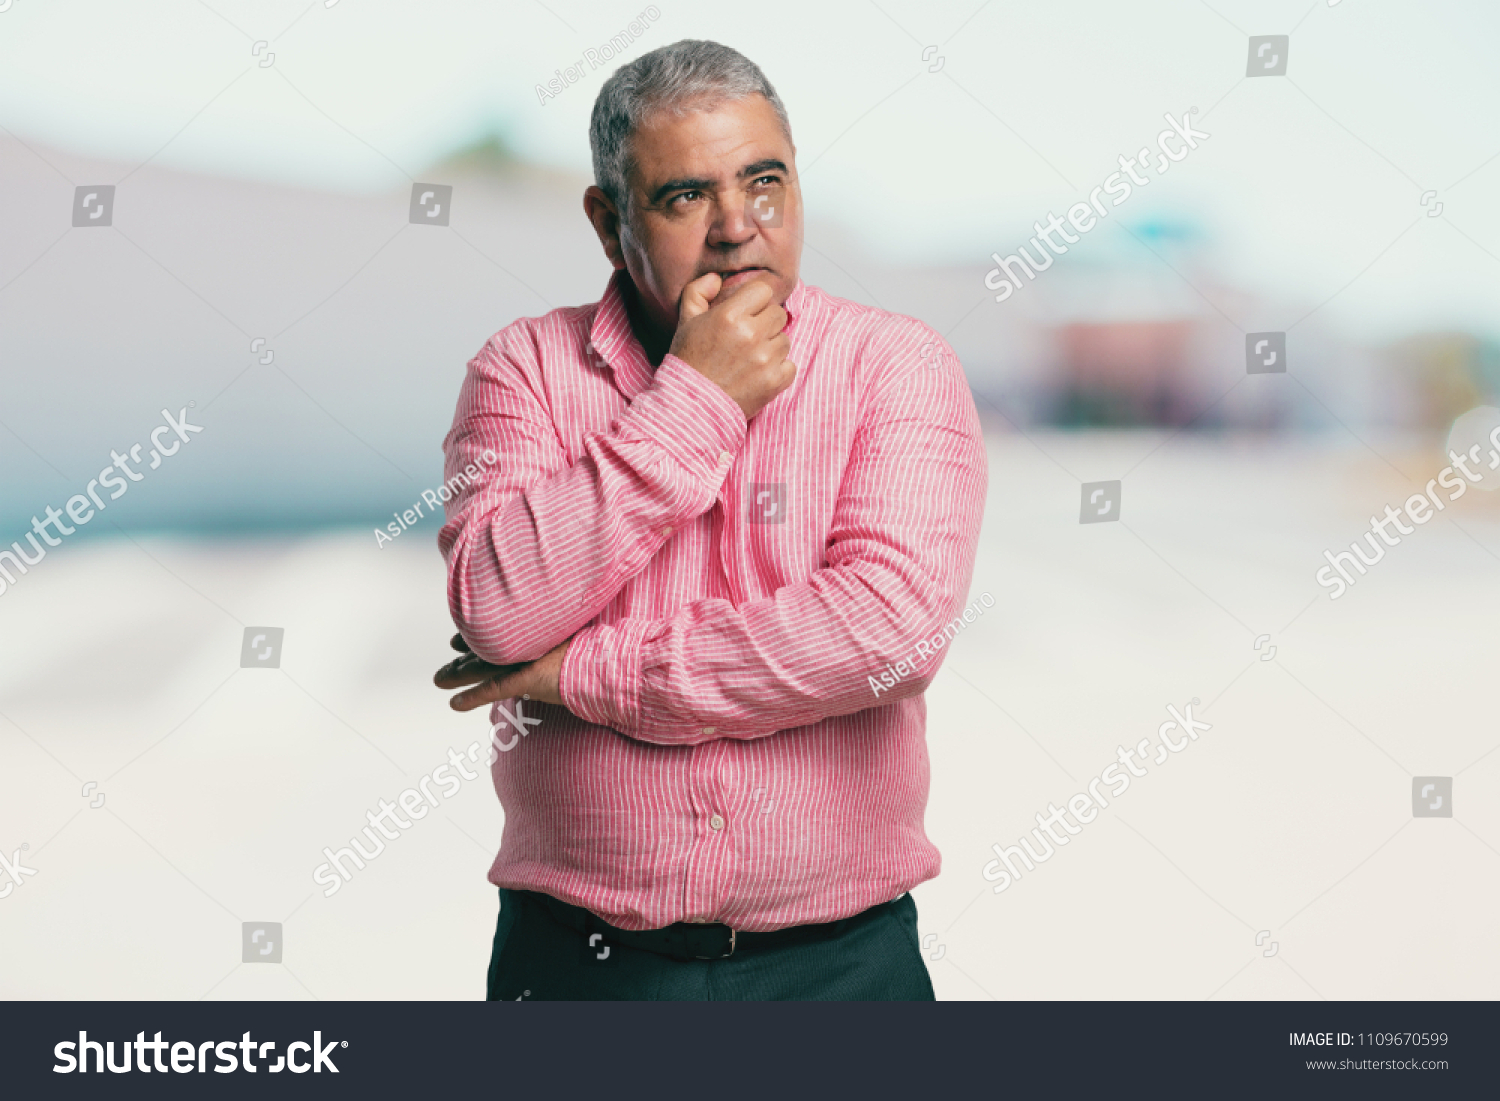 Middle Aged Man Biting Nails Nervous Stock Photo (Royalty Free ...